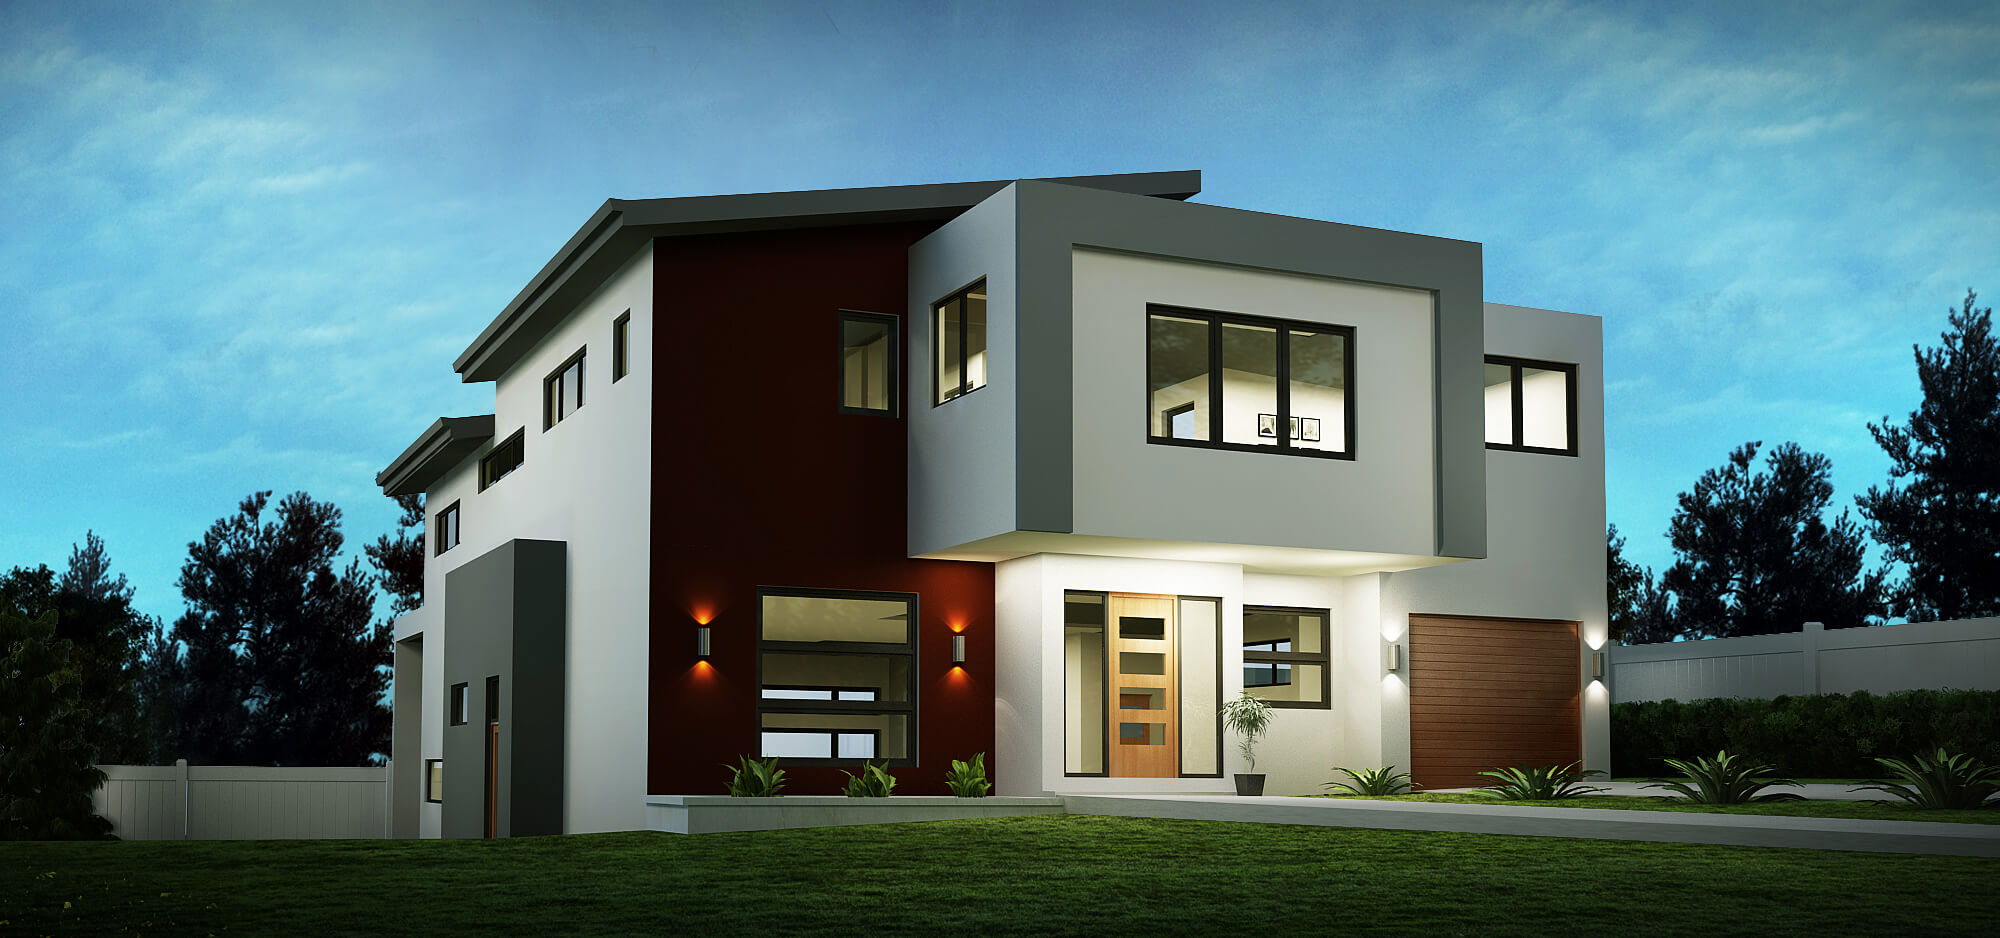 Sloping house block designs custom home designs Custom design home